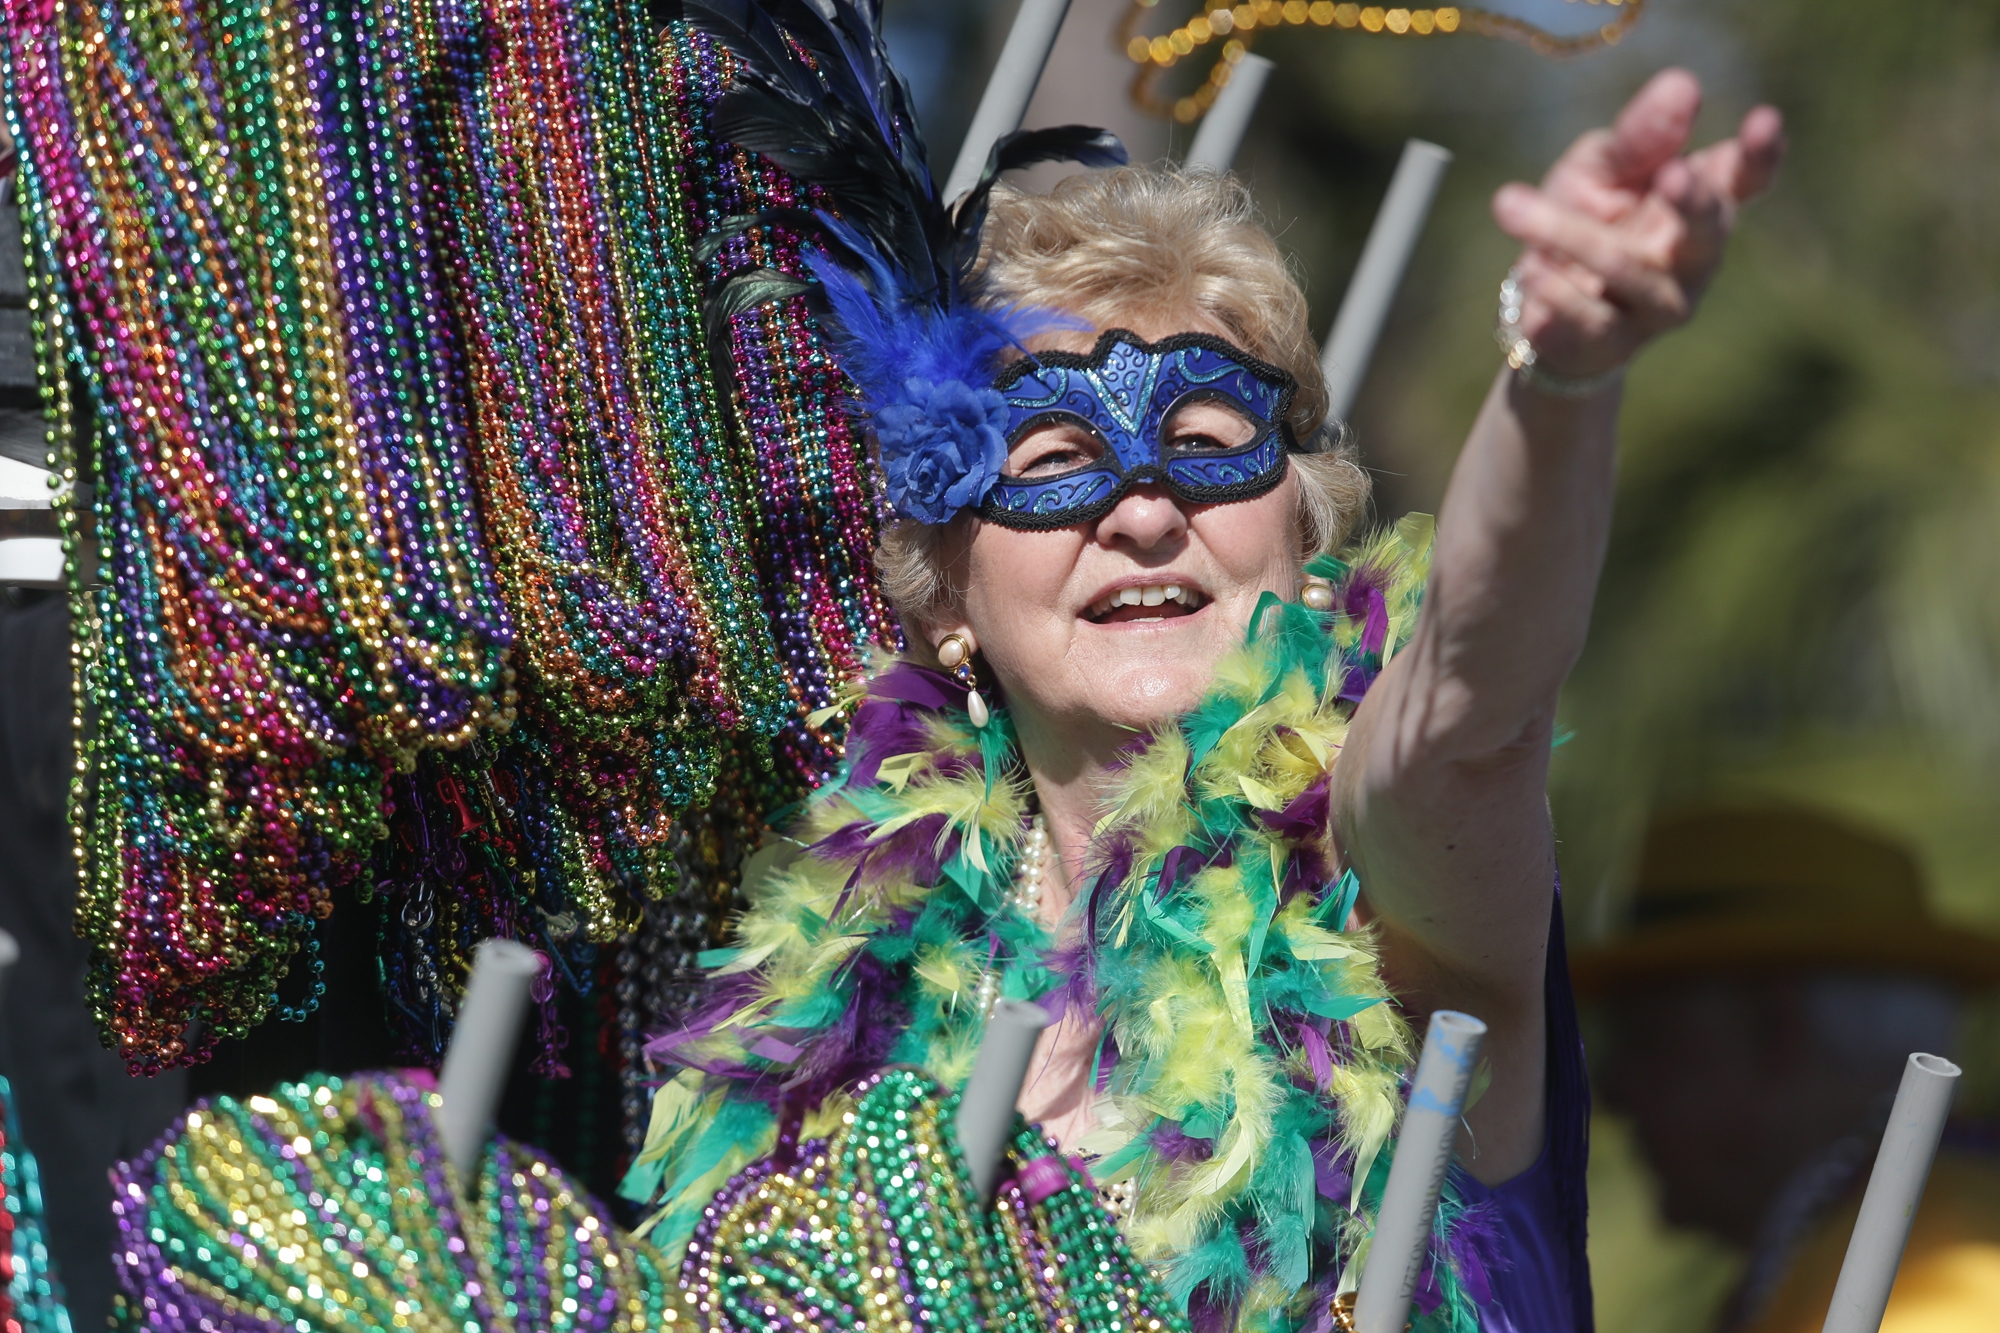 pulls of beads drains storm us carnival orleans fox gras mardi new news from pounds